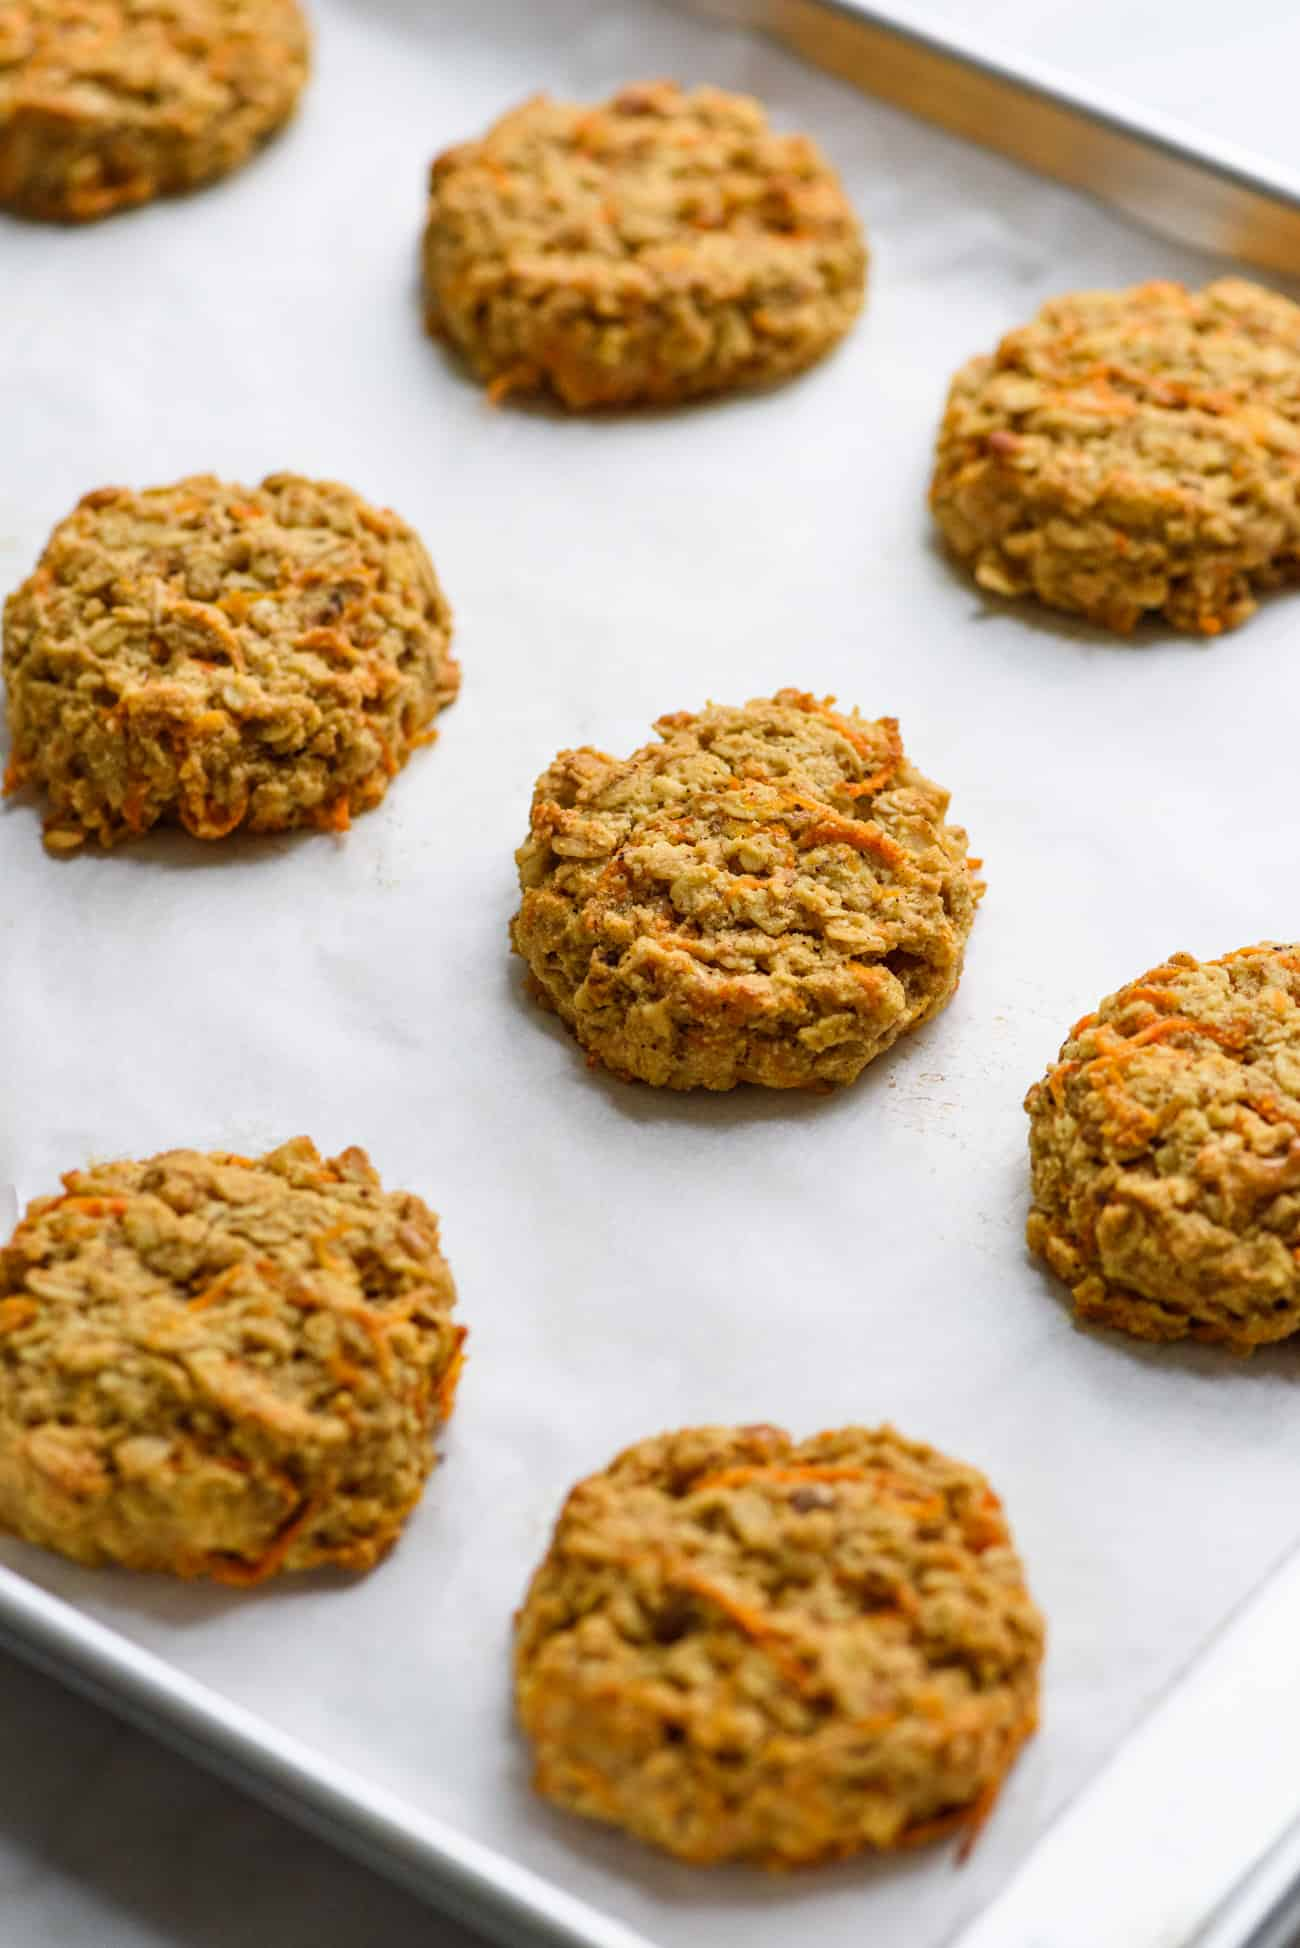 Vegan carrot oatmeal cookies on a baking sheet with parchment paper